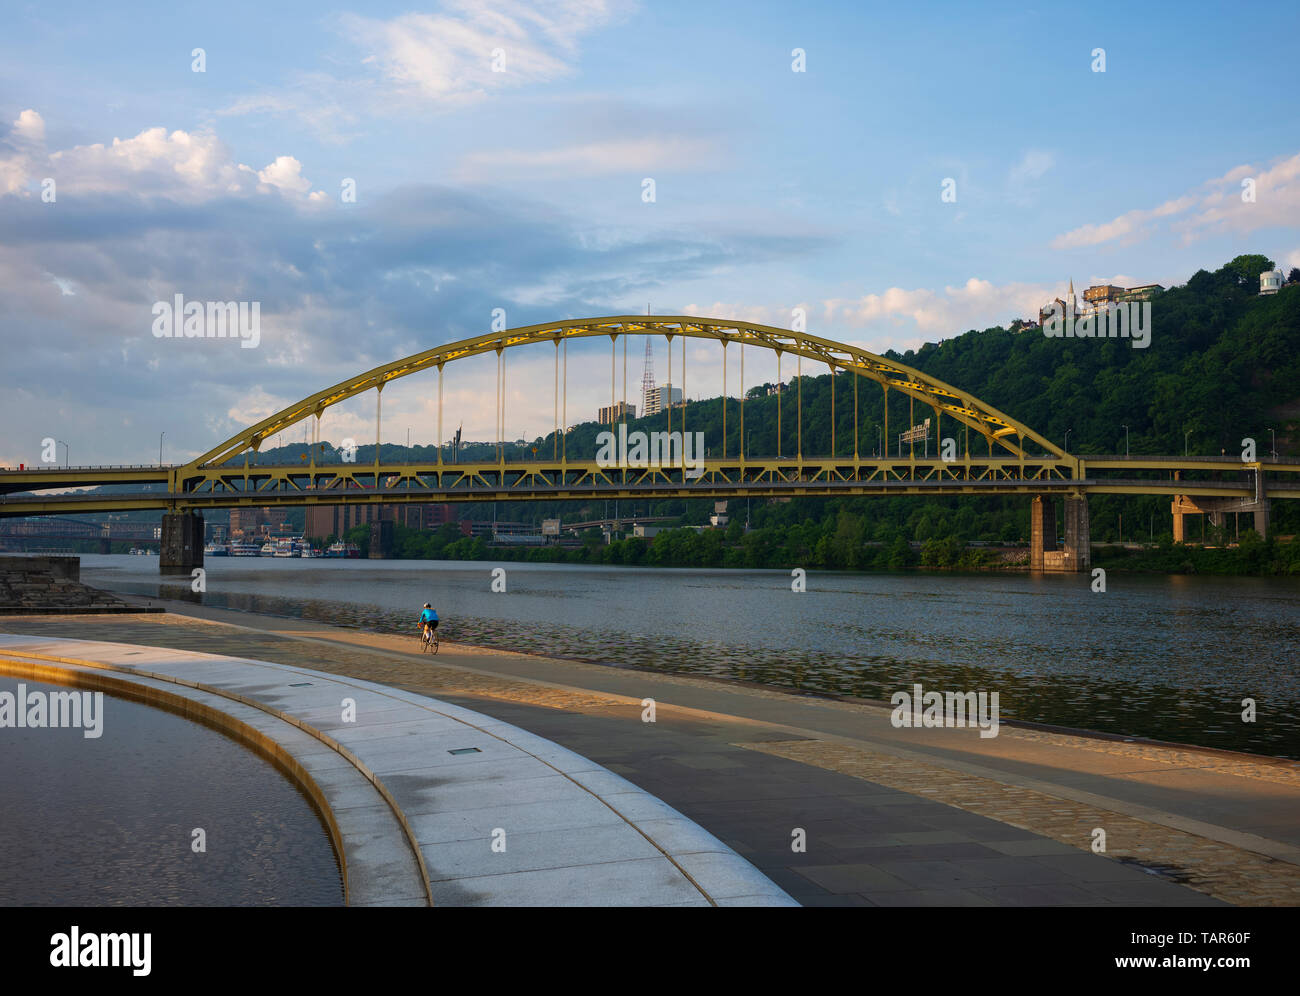 Early morning exericse in the City of Pittsburgh, Pennsylvania seen at sunrise from Point State Park. - Stock Image